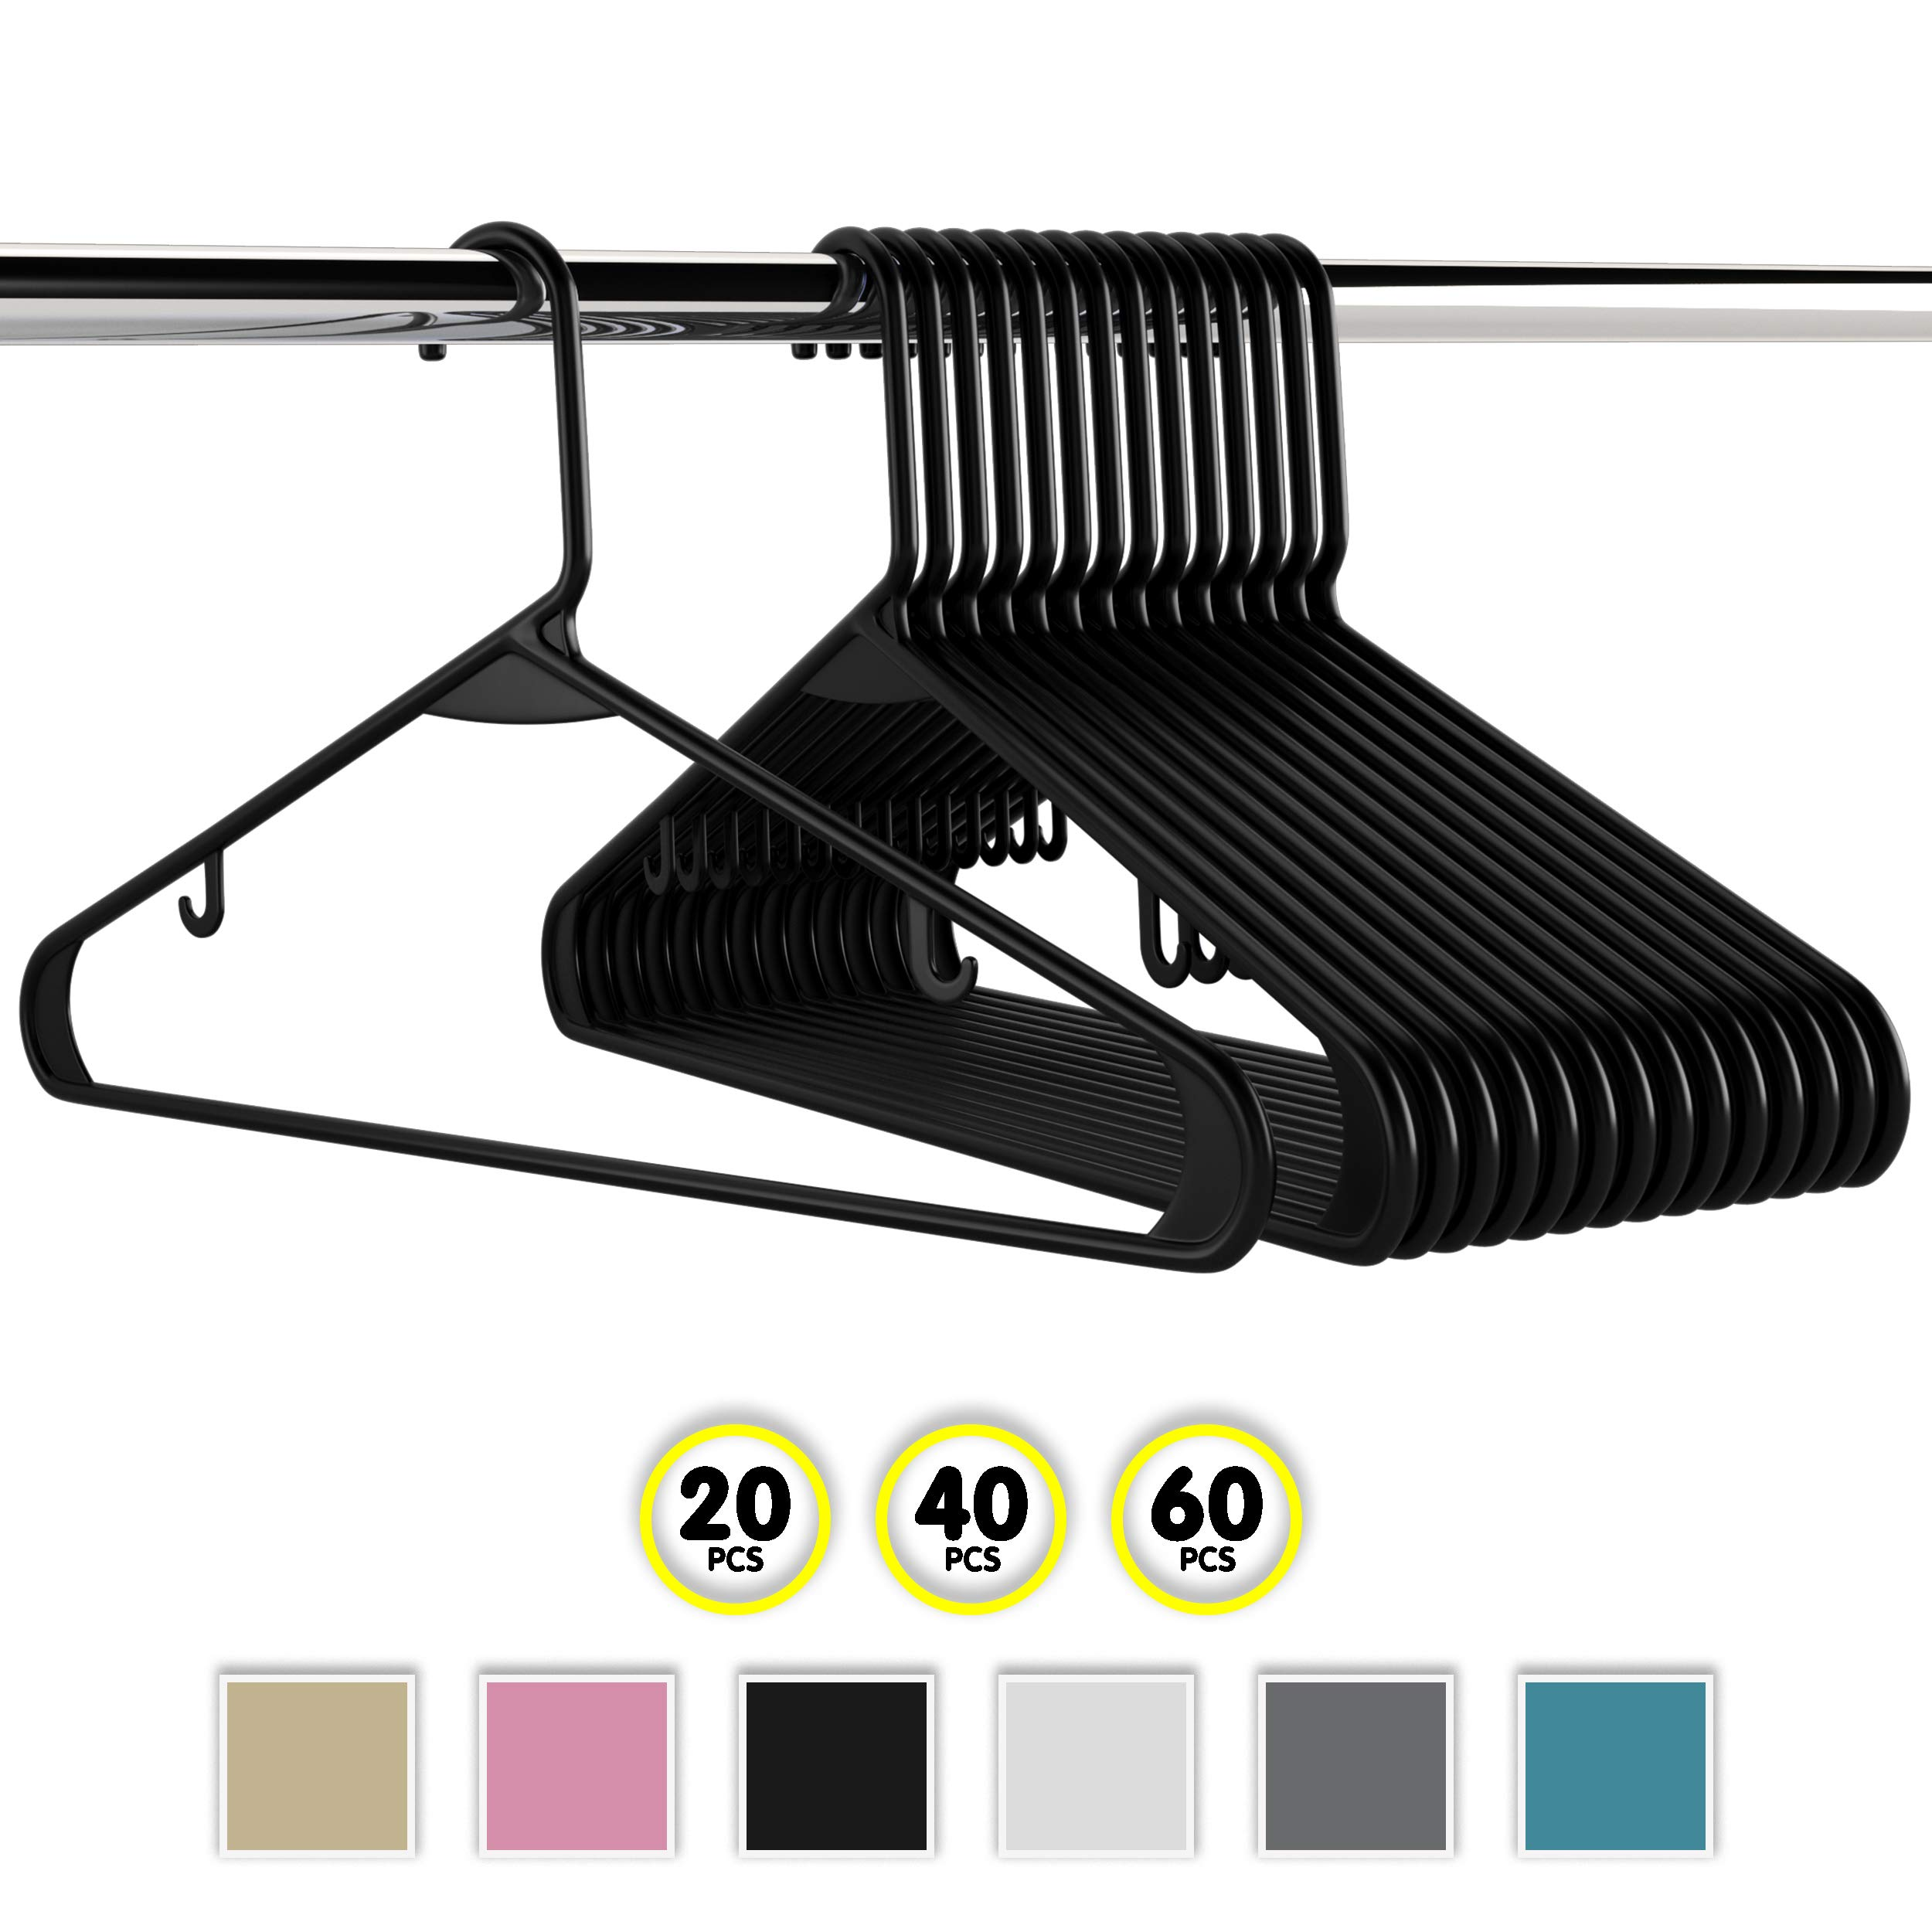 Neaterize Plastic Clothes Hangers  Heavy Duty Durable Coat and Clothes Hangers   Vibrant Colors Adult Hangers   Lightweight Space Saving Laundry Hangers   20, 40, 60 Available (20 Pack - Black)